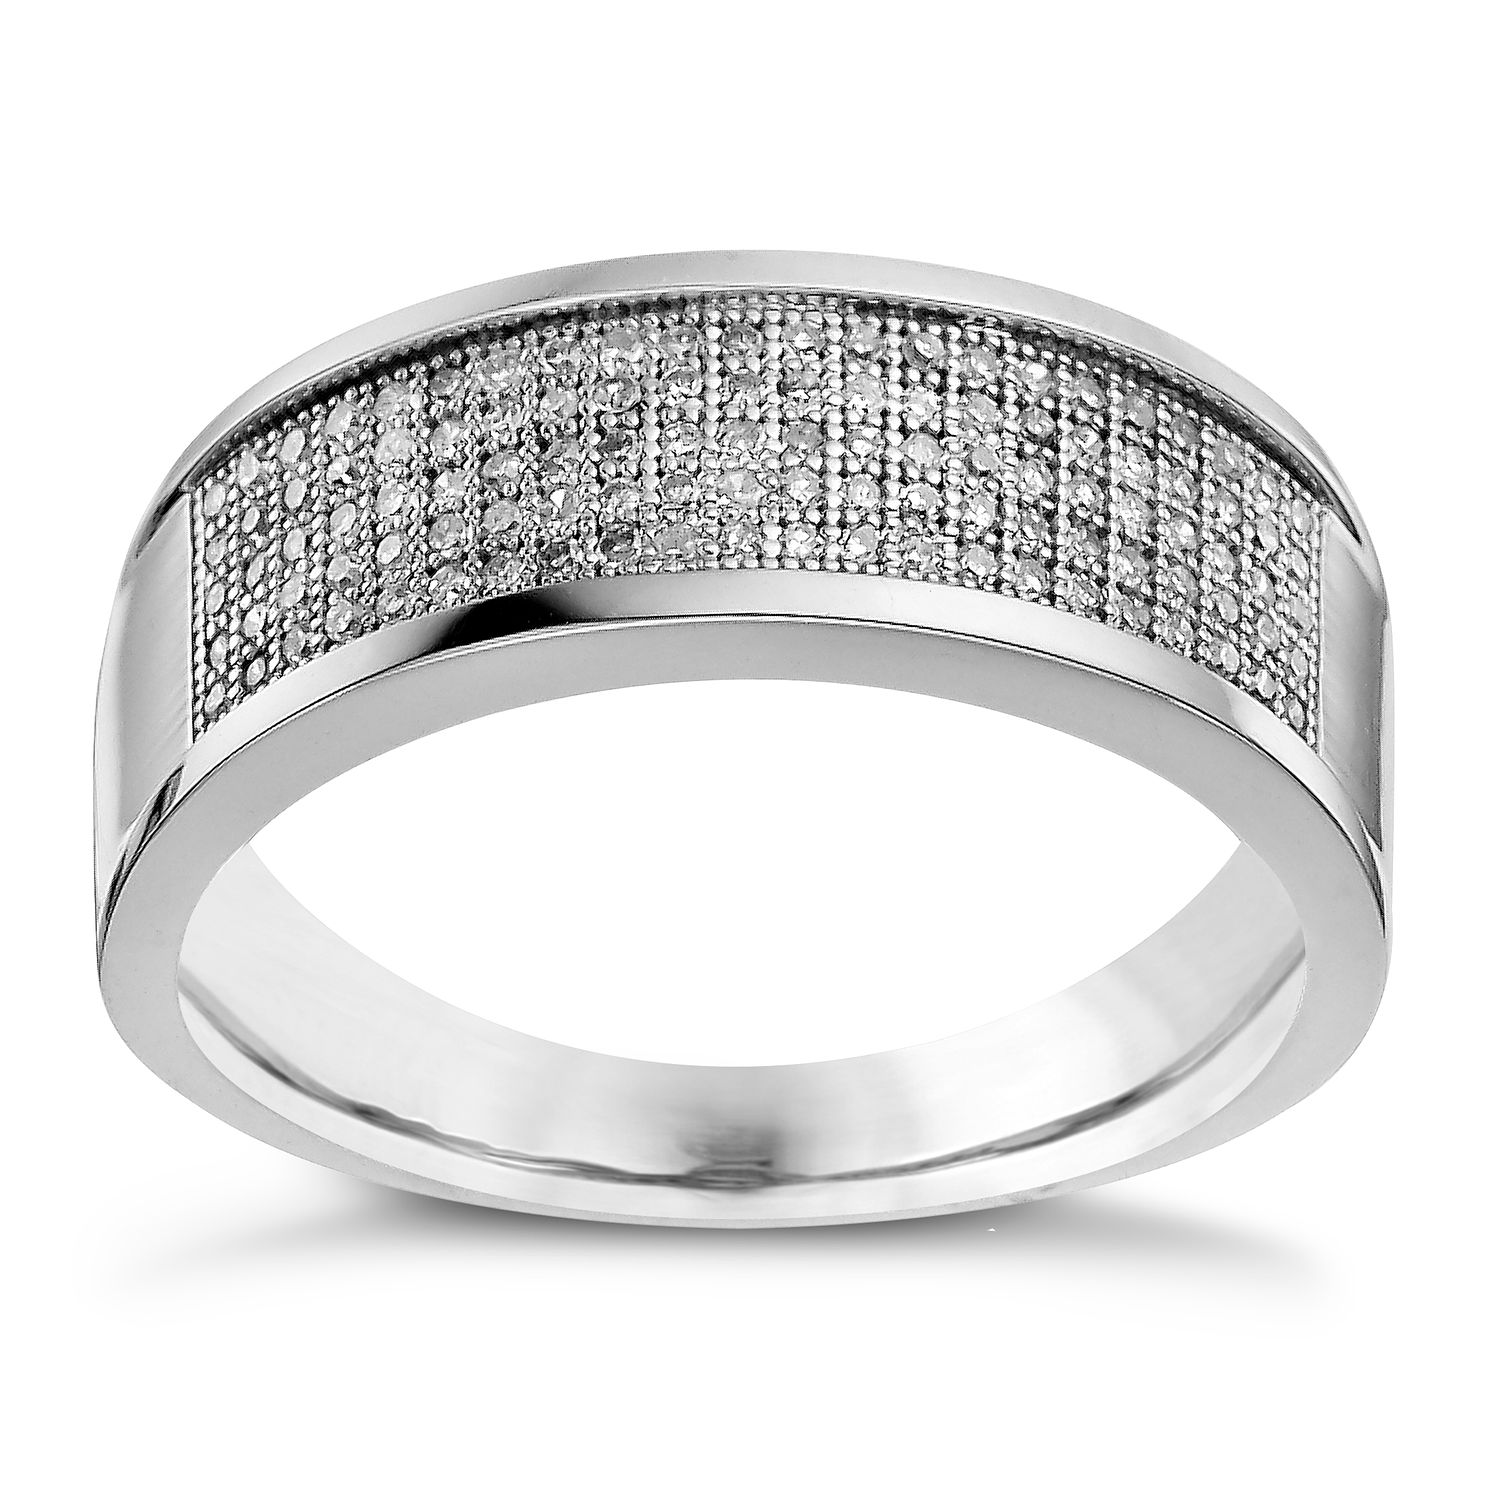 Men's 9ct White Gold 0.30ct Diamond Pave Set 8mm Ring - Product number 9619372